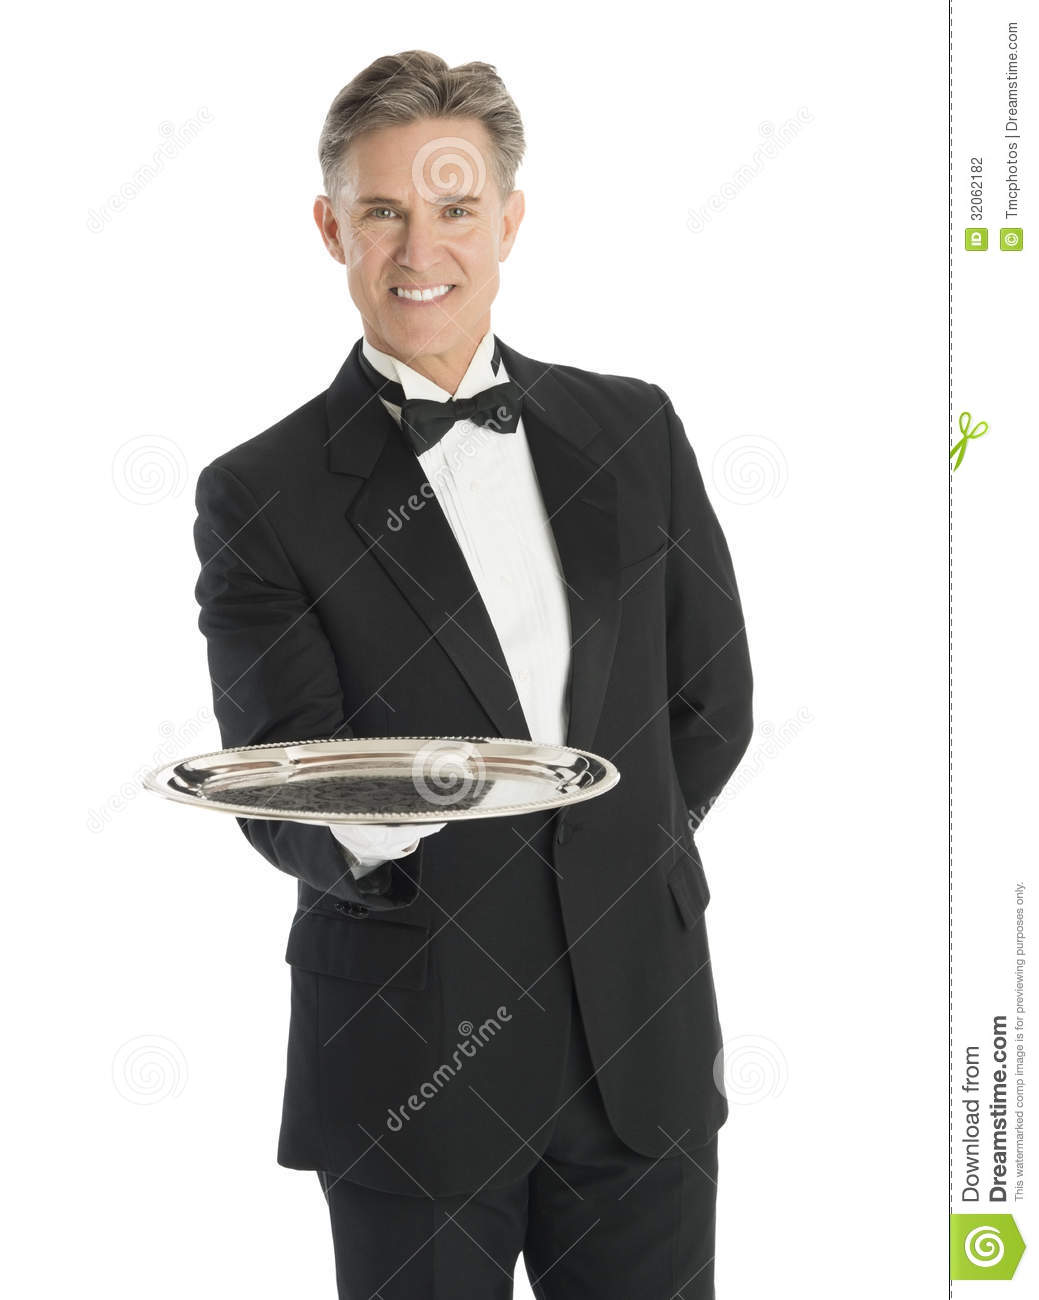 Carrying Serving Tray  Waiters Serving Tray